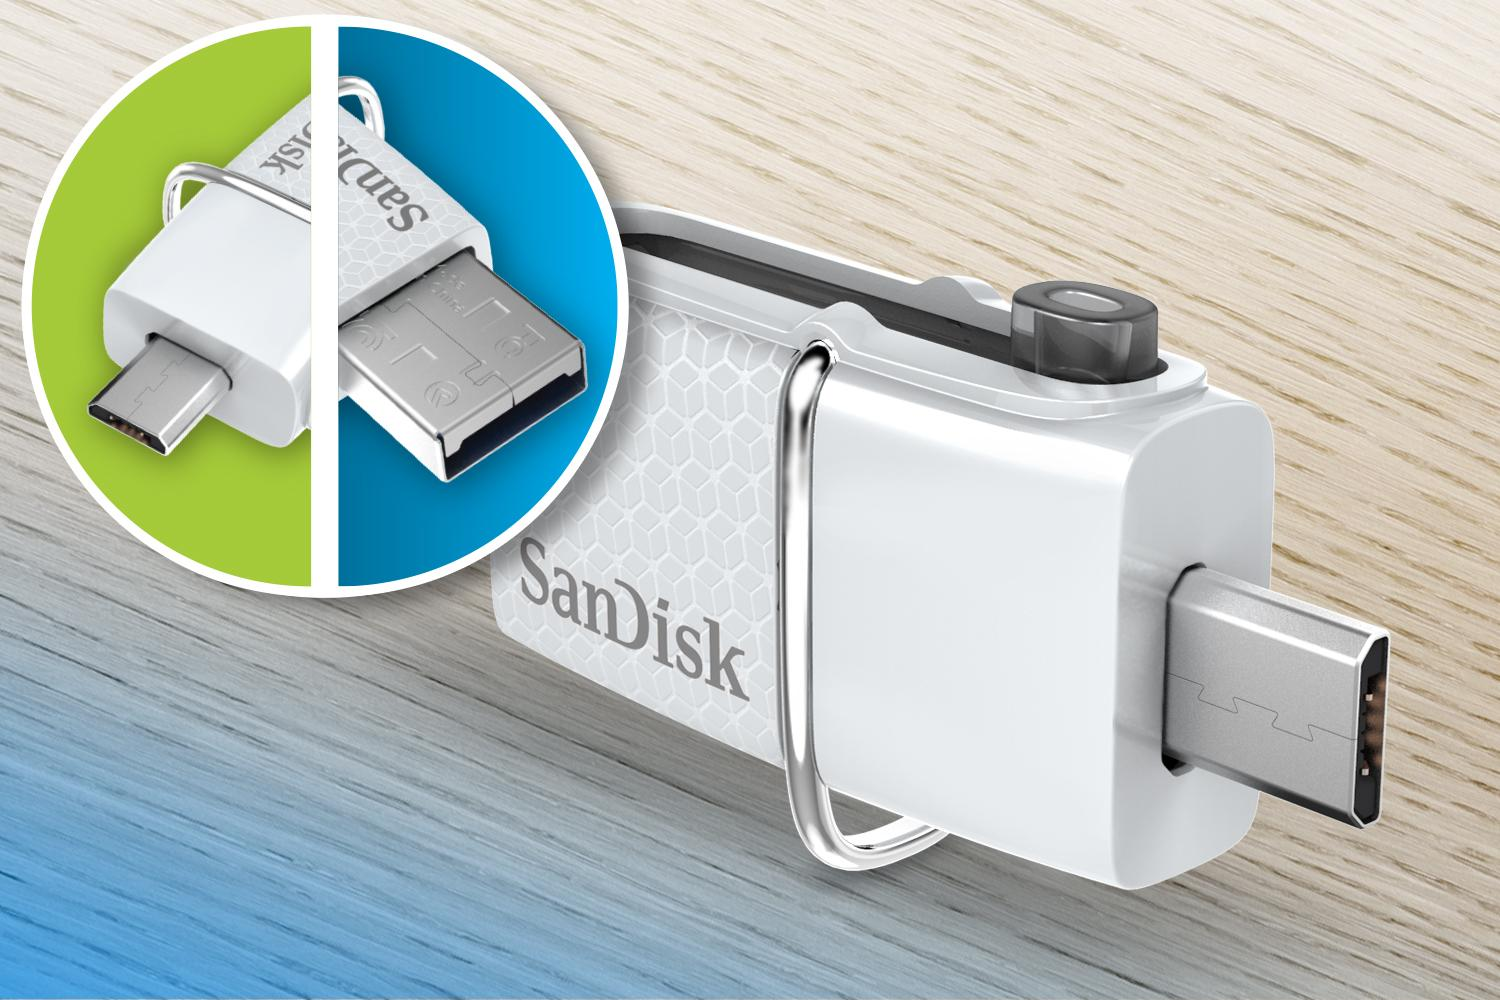 Sandisk Sddd2 032g Me46w Online Disks On Key Store Israel Buy Ultra Dual Usb Drive 30 128gb View Larger